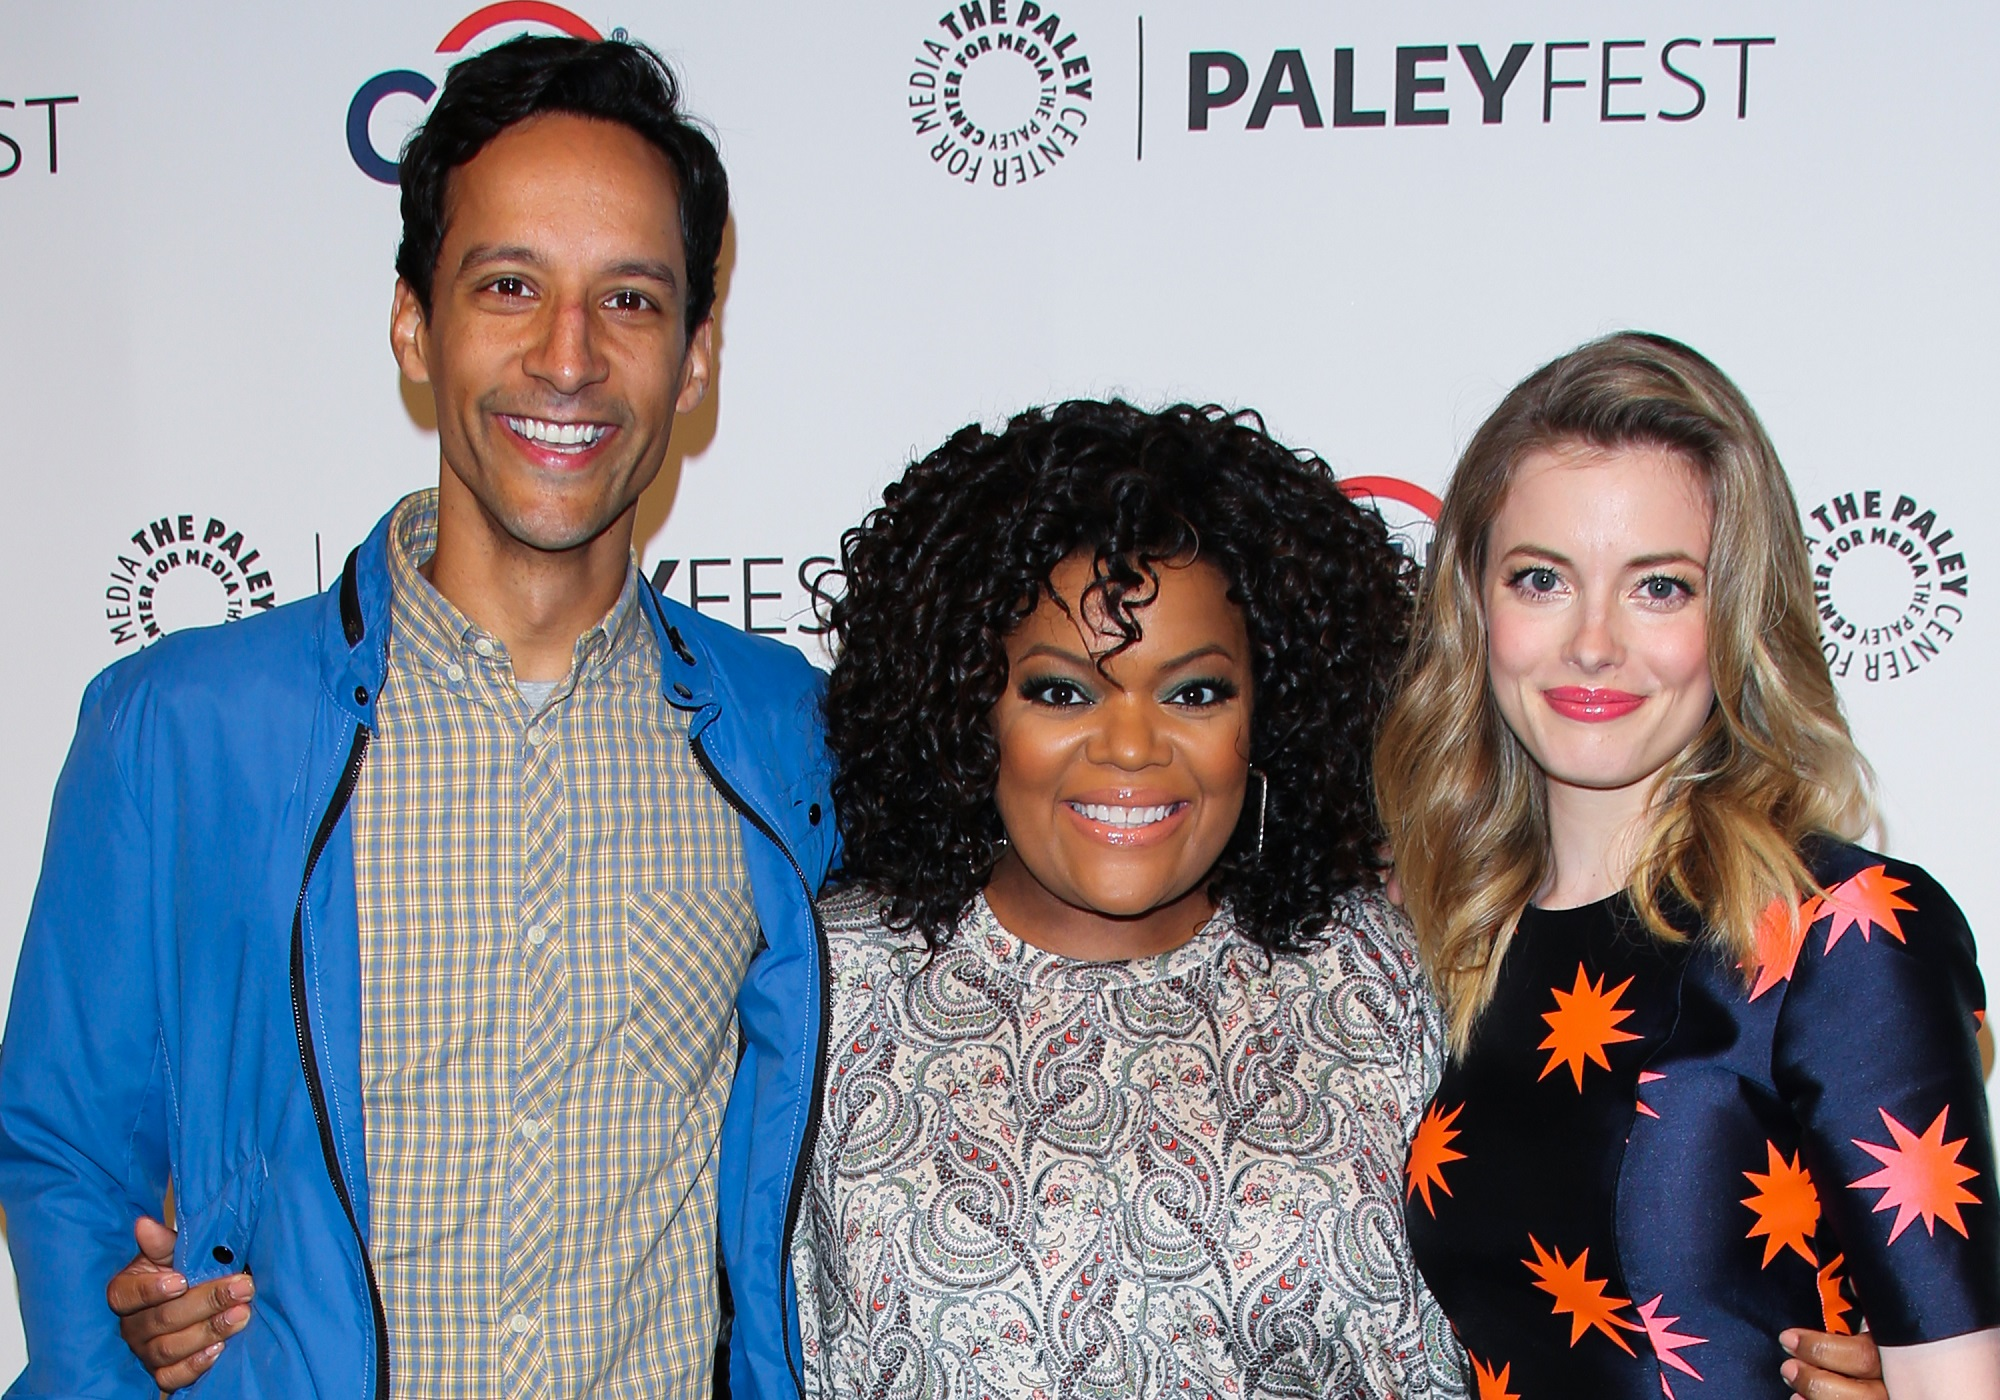 Danny Pudi, Yvette Nicole Brown, and Gillian Jacobs of Community